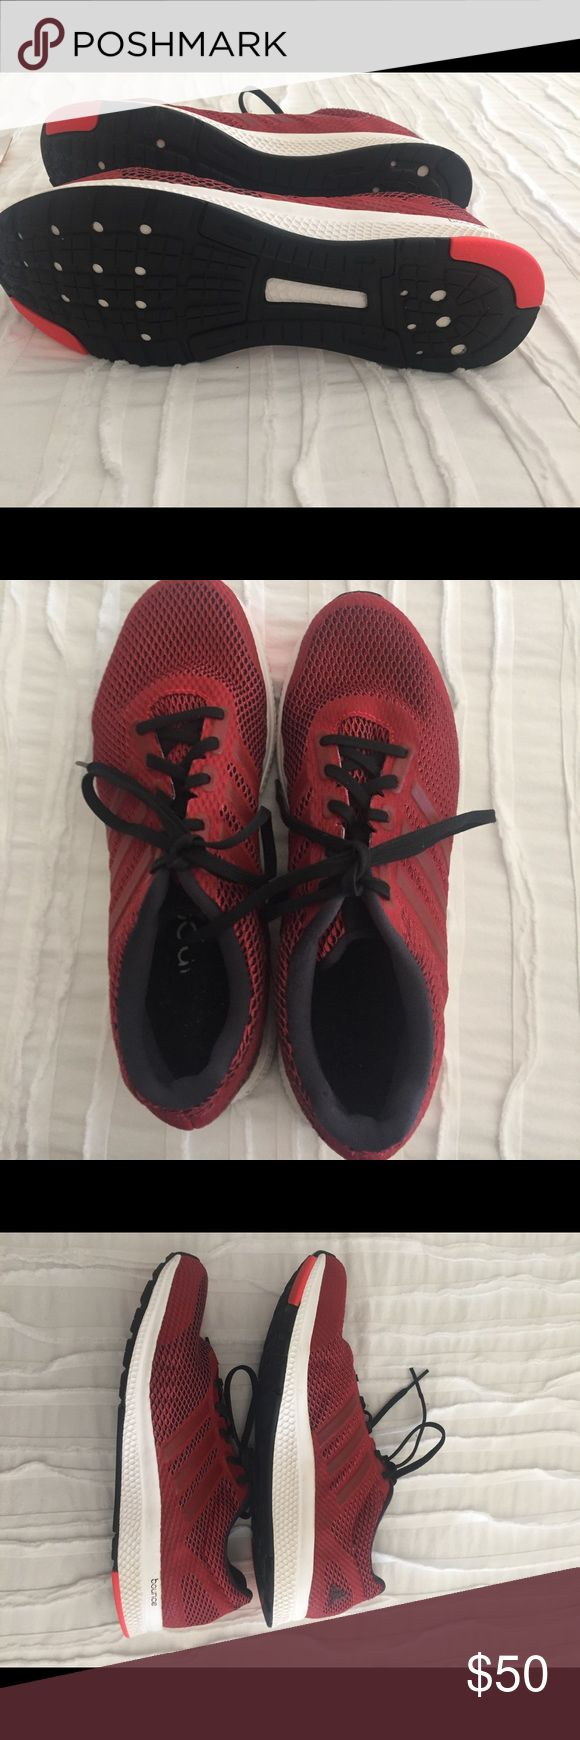 Adidas 91/2 men running shoes like new Adidas red running shoes like new adidas Shoes Athletic Shoes